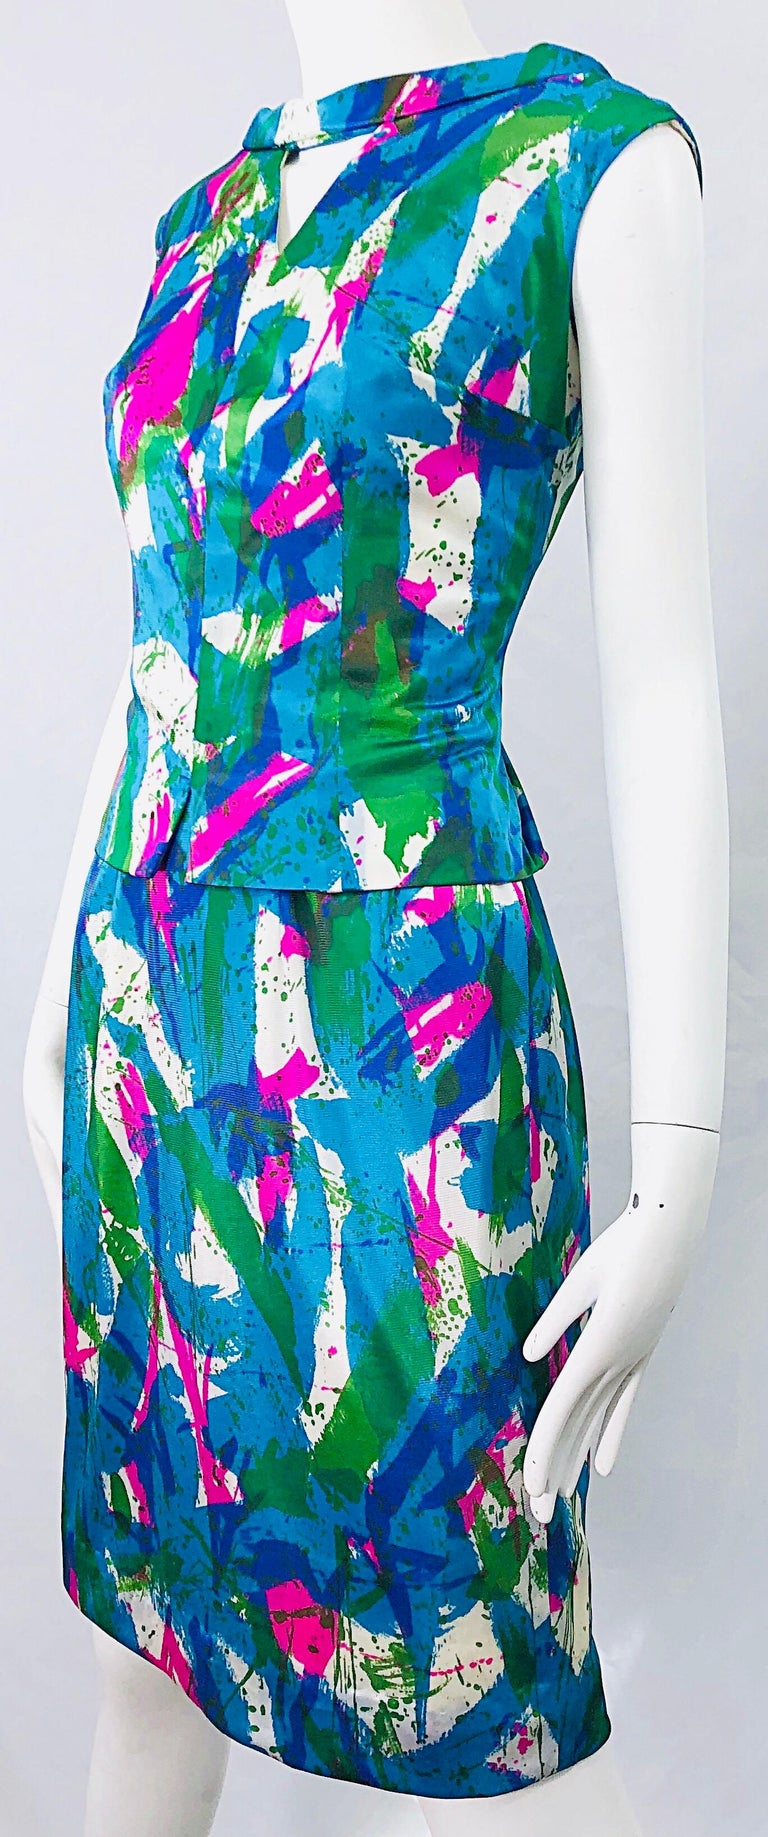 Chic 1960s Neon Abstract Print Two Piece Vintage 60s Sheath Dress + Top Blouse  For Sale 6